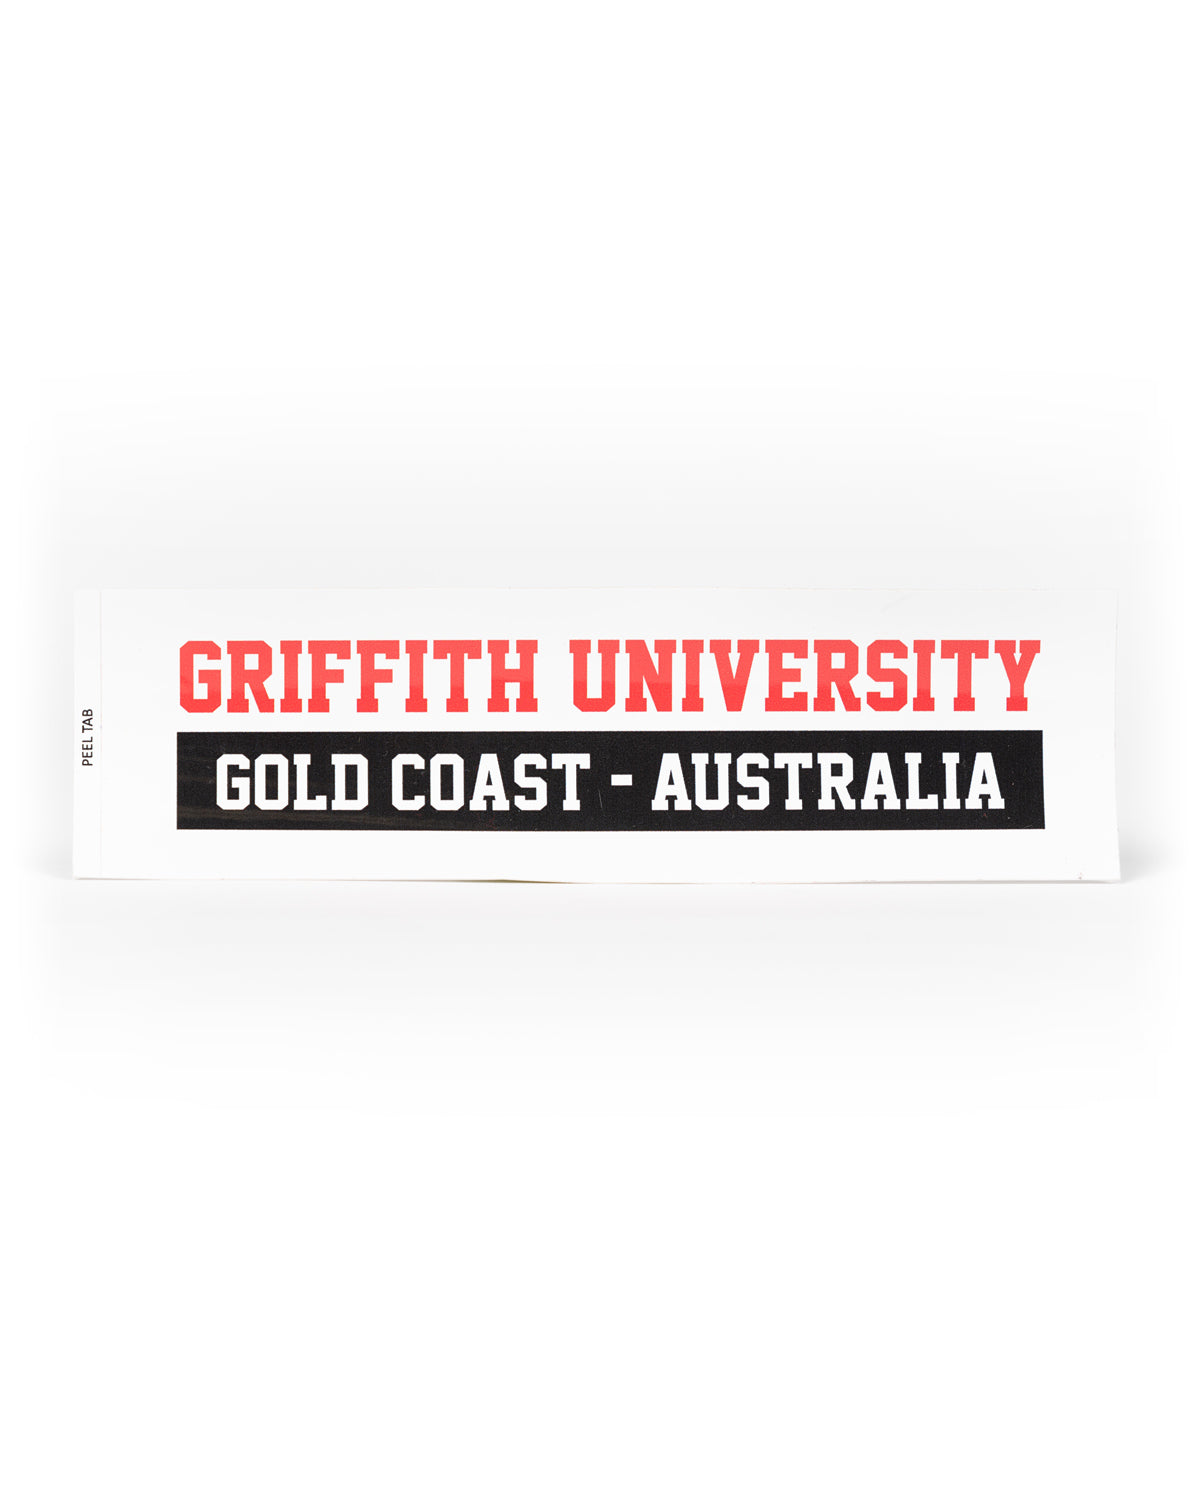 Griffith sticker